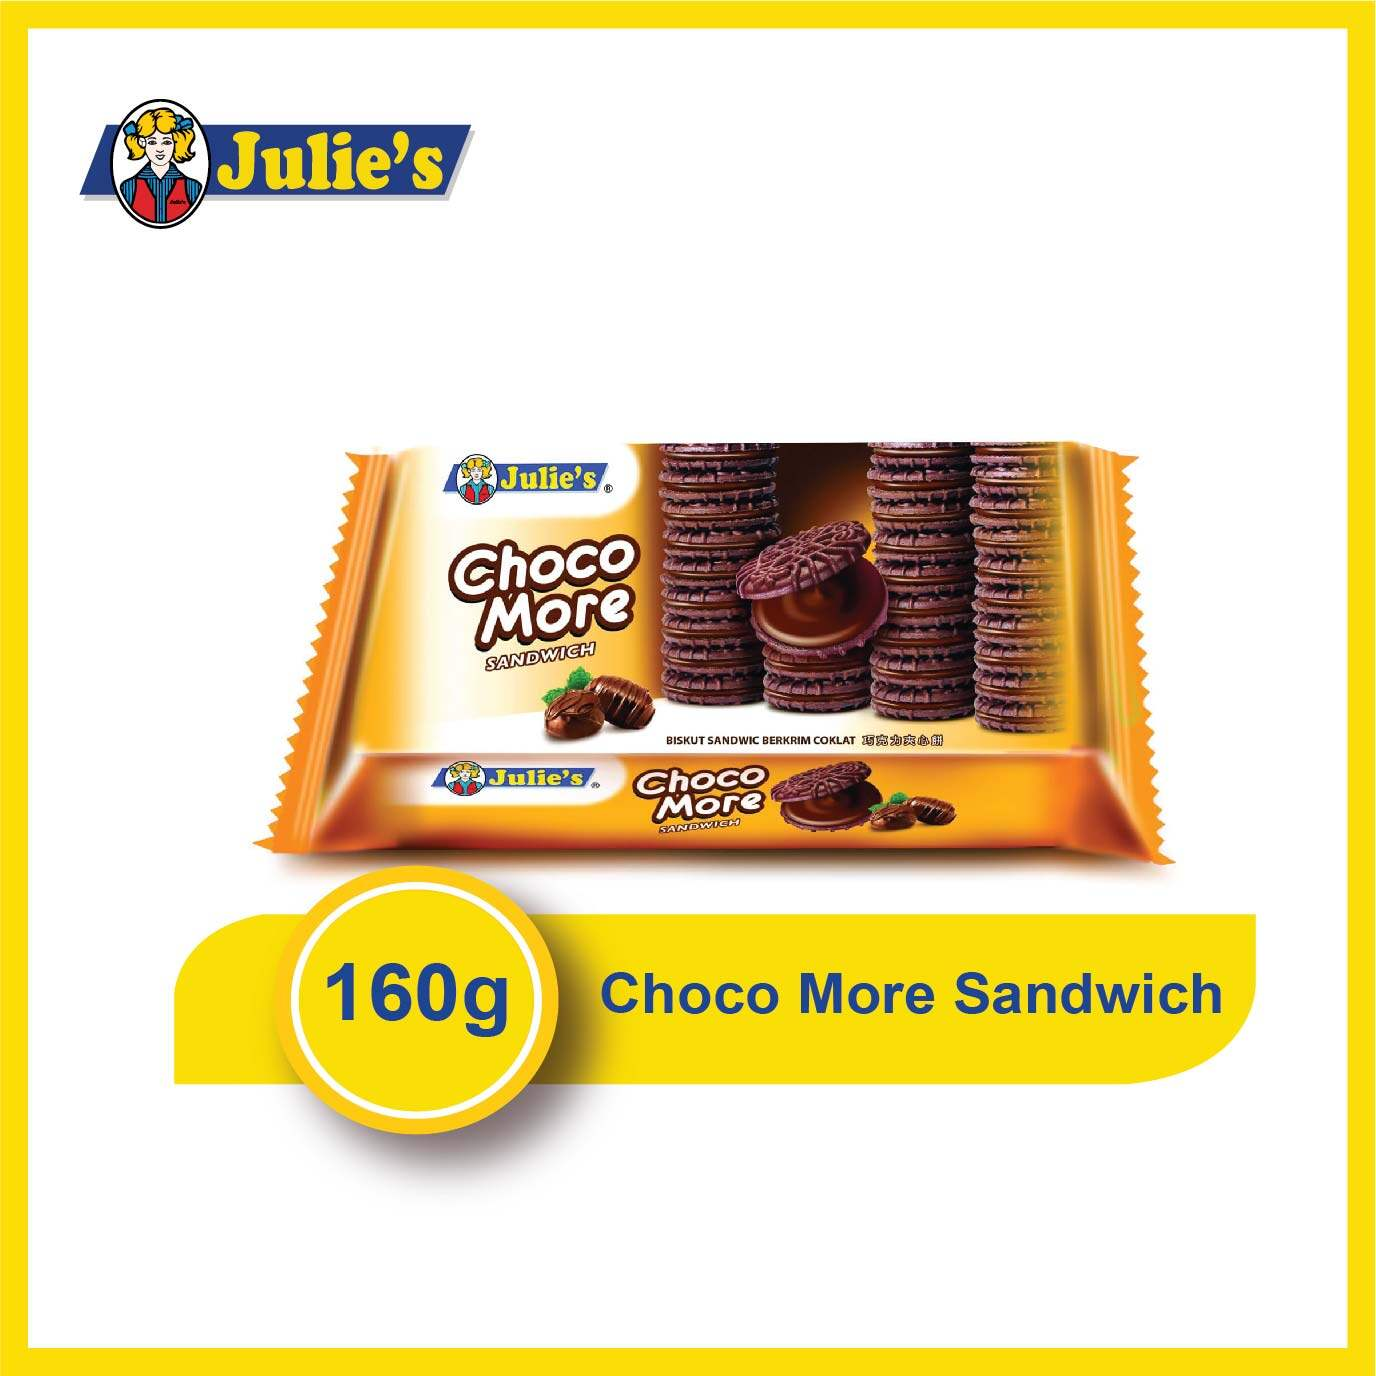 Julie's Choco More Sandwich 160g x 1 packet